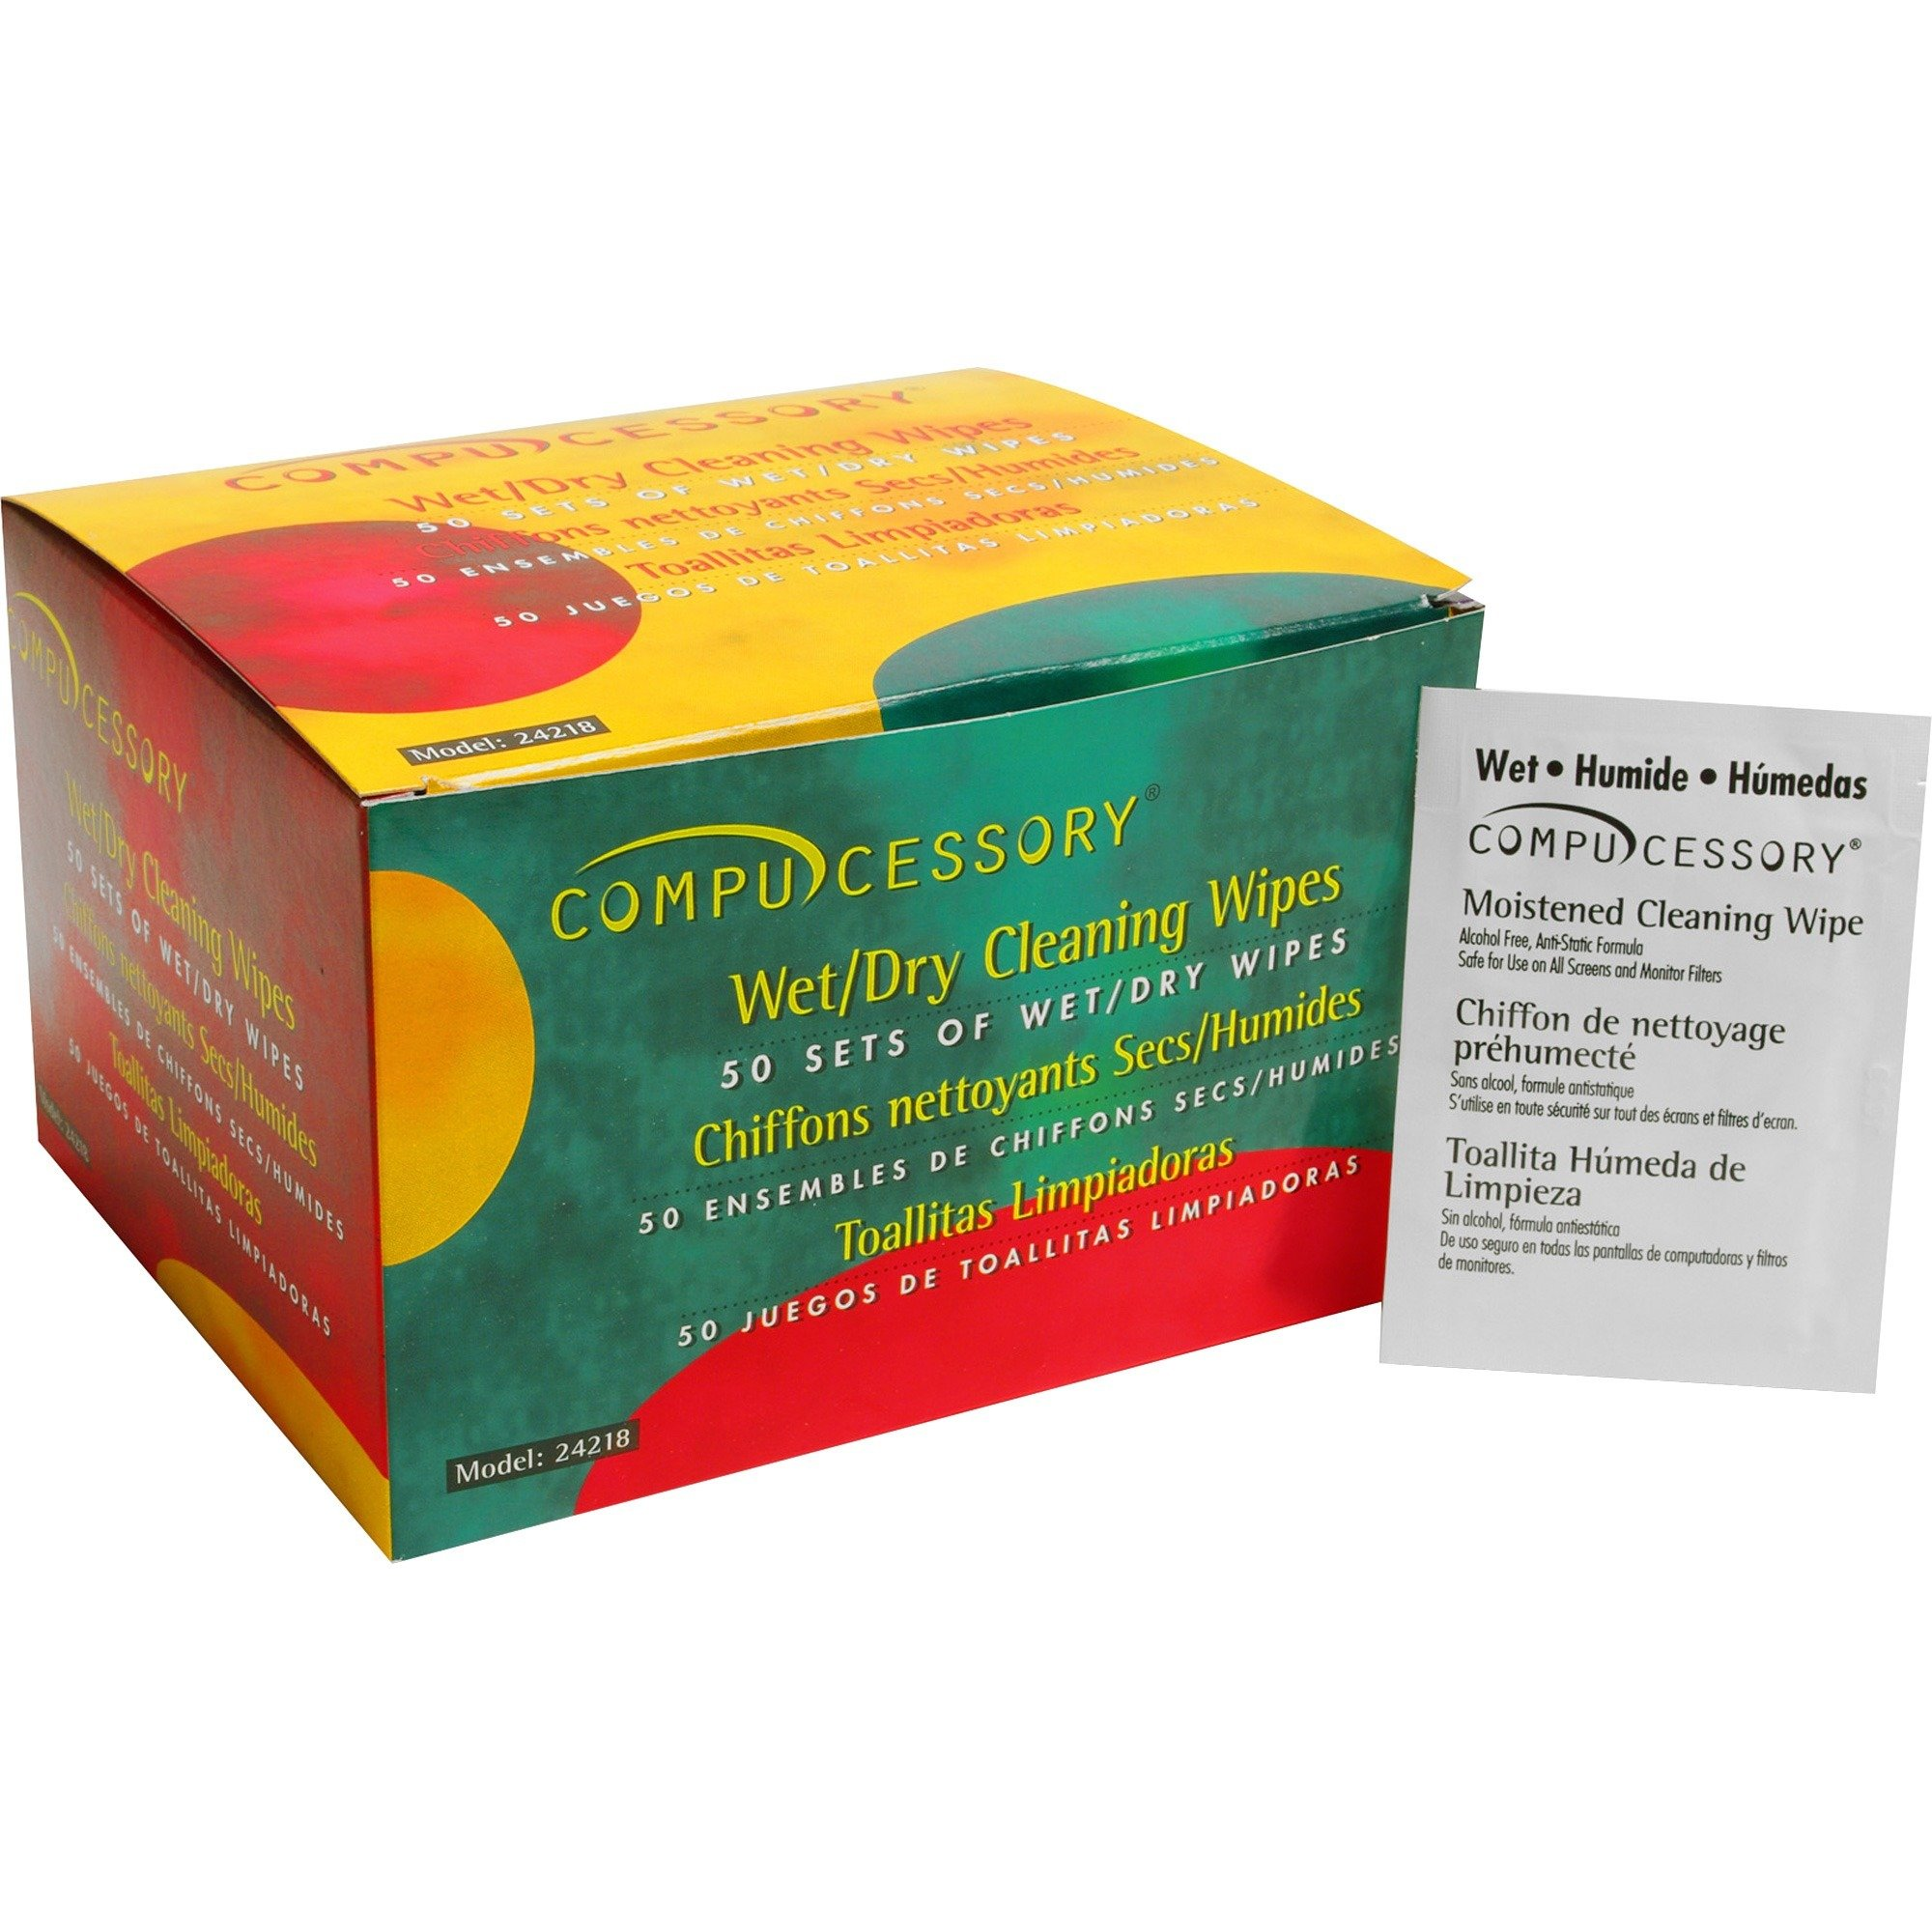 Compucessory Wet & Dry Cleaning Wipes (CCS24218)